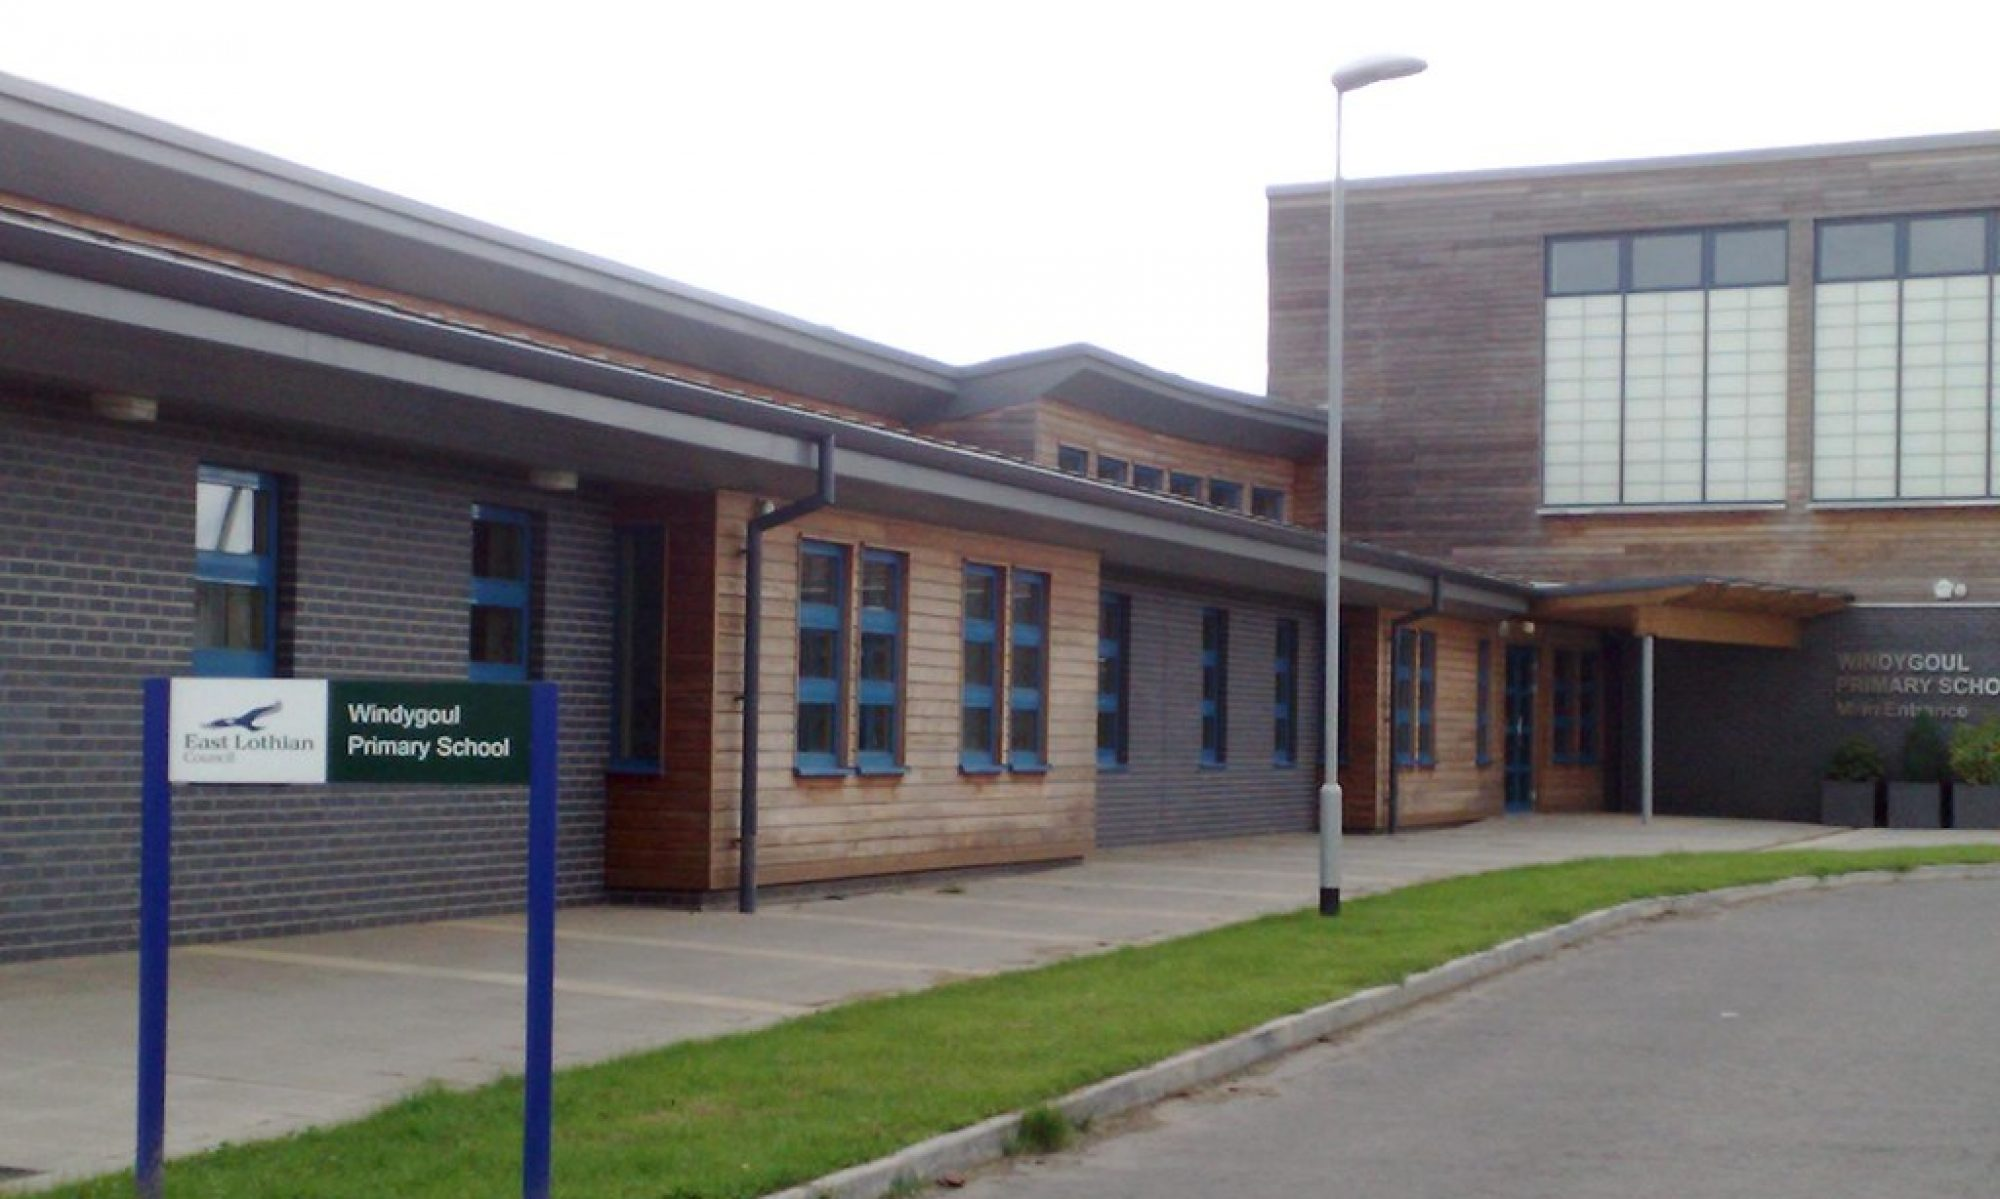 Windygoul Primary School